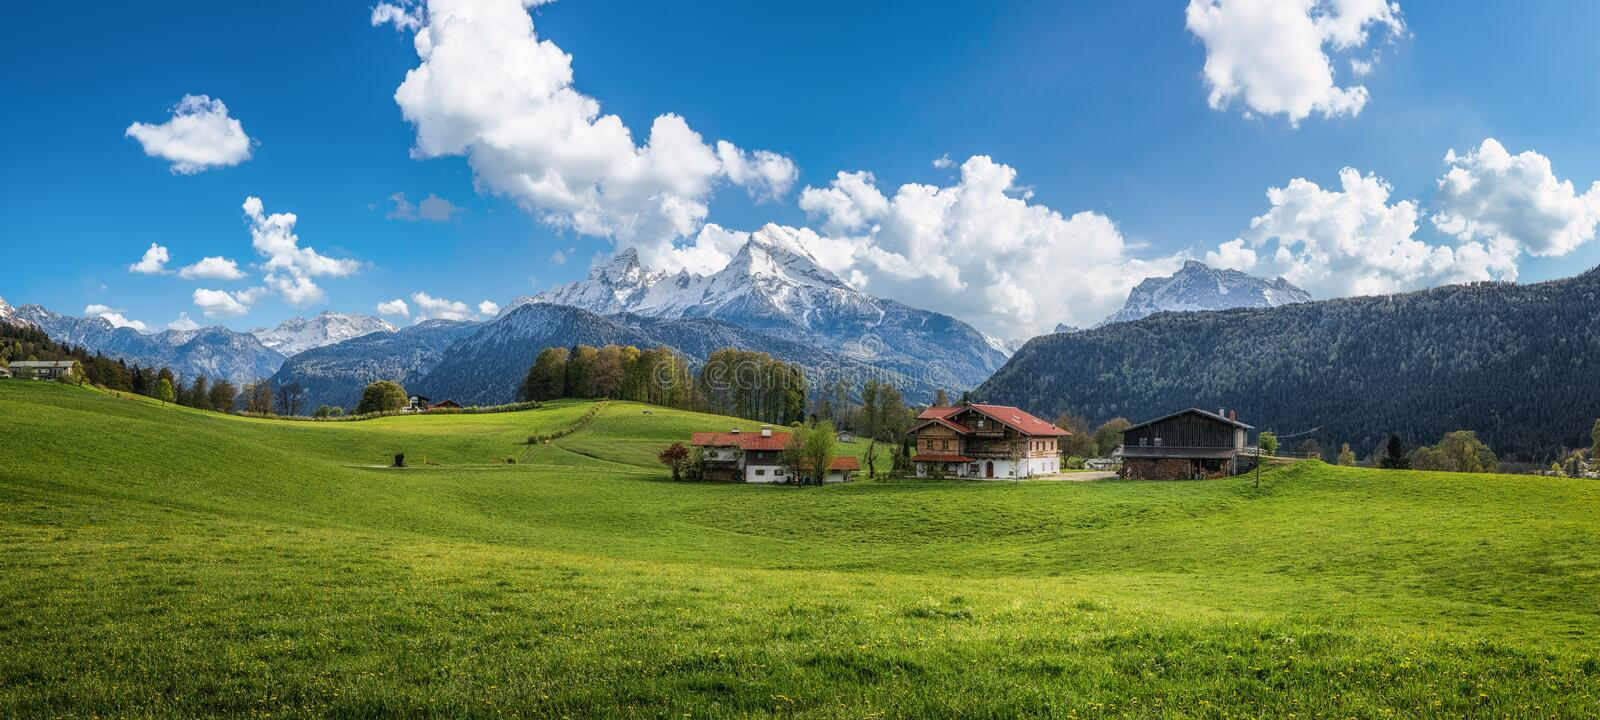 Idyllic alpine landscape with green meadows, farmhouses and snow-capped mountain tops stock image